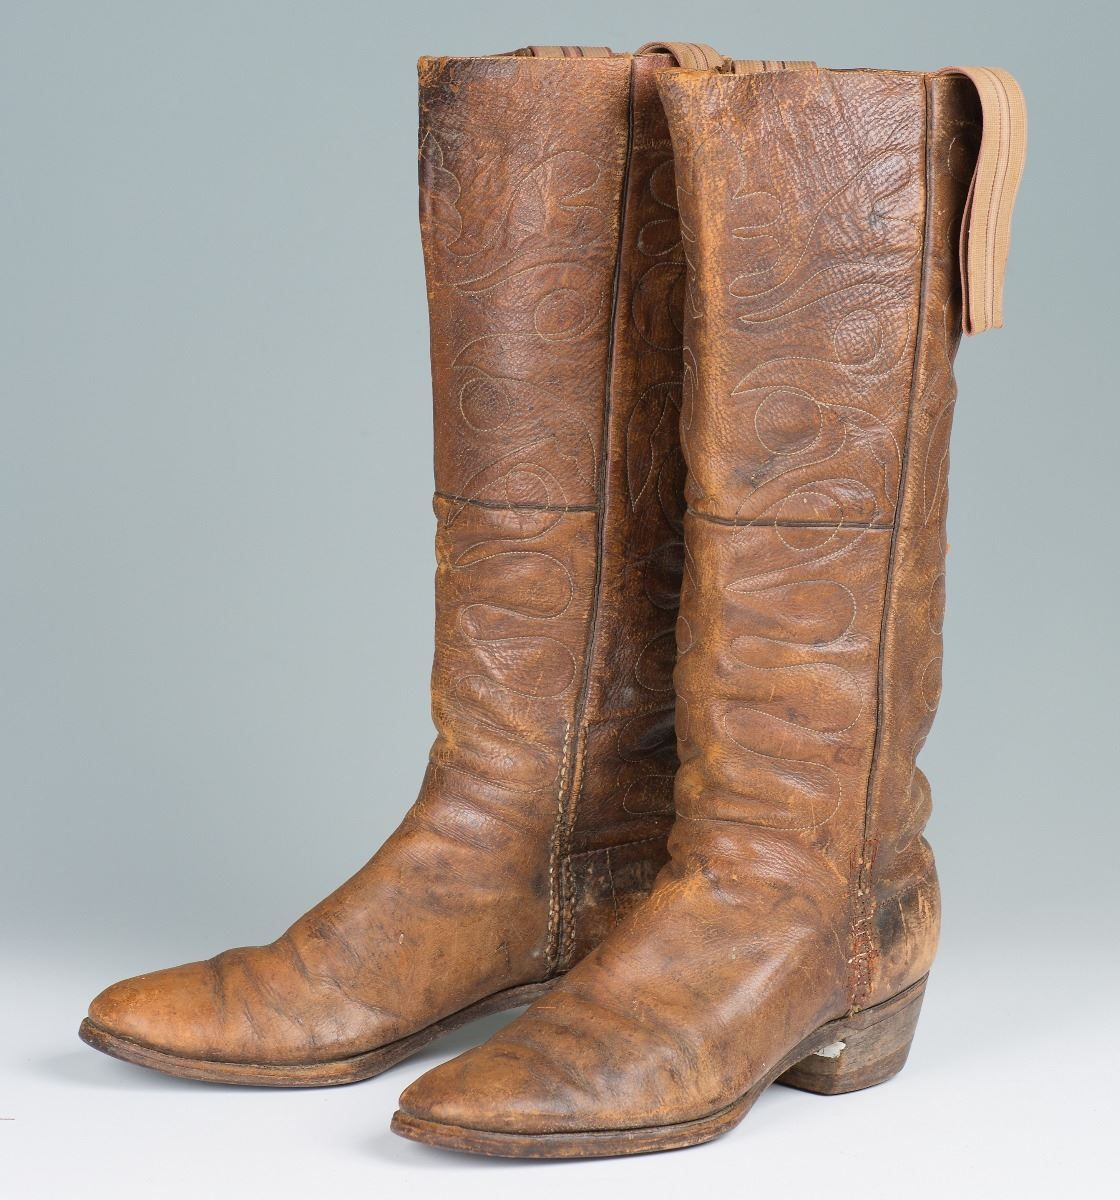 d689fceb91f Pair of Cowboy Stovepipe Boots - Old West Events | Western Cowboy ...